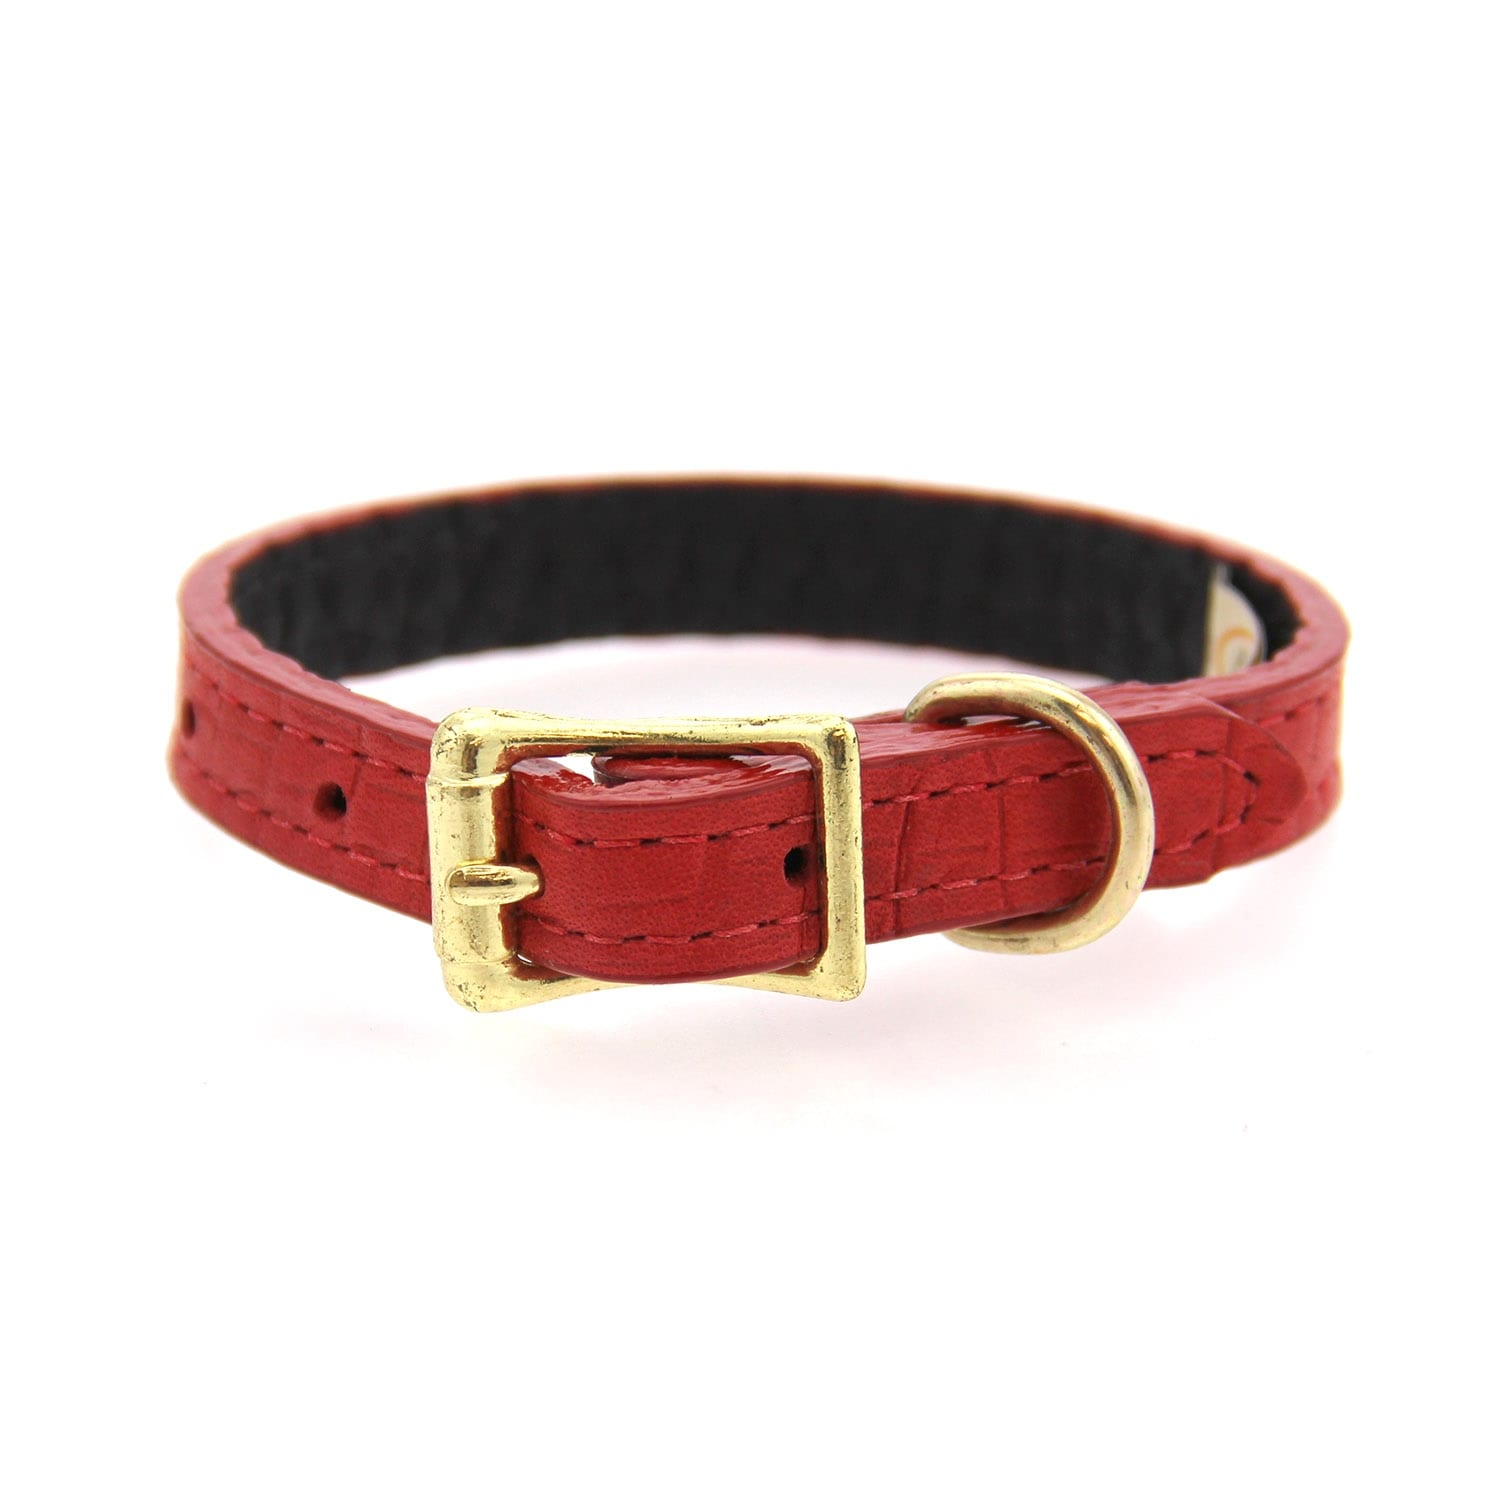 Savannah Leather Dog Collar by Auburn Leather - Lizard Red (Lizard Red - 1/2 Width x 8 Length)